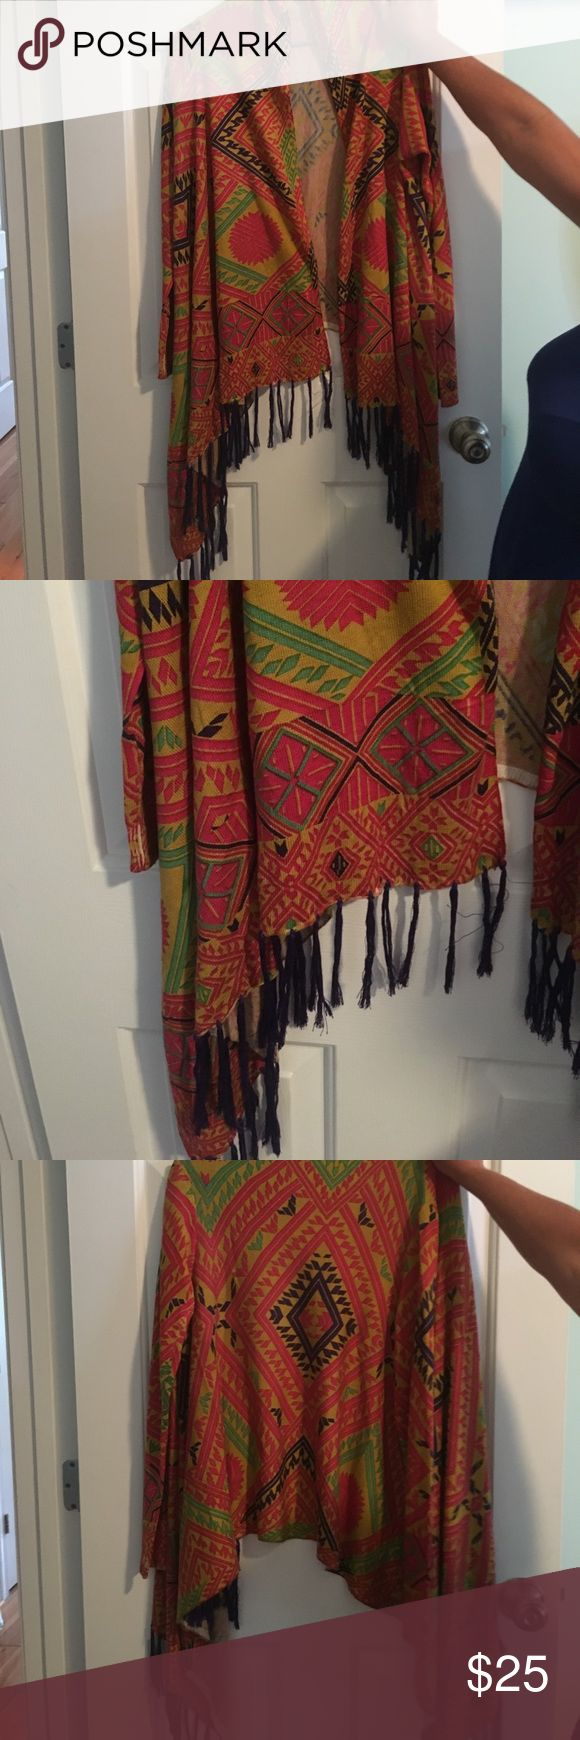 Tribal print cardigan Tribal print cardigan with tassels at the bottom! Size small NEVER BEEN WORN Sweaters Cardigans